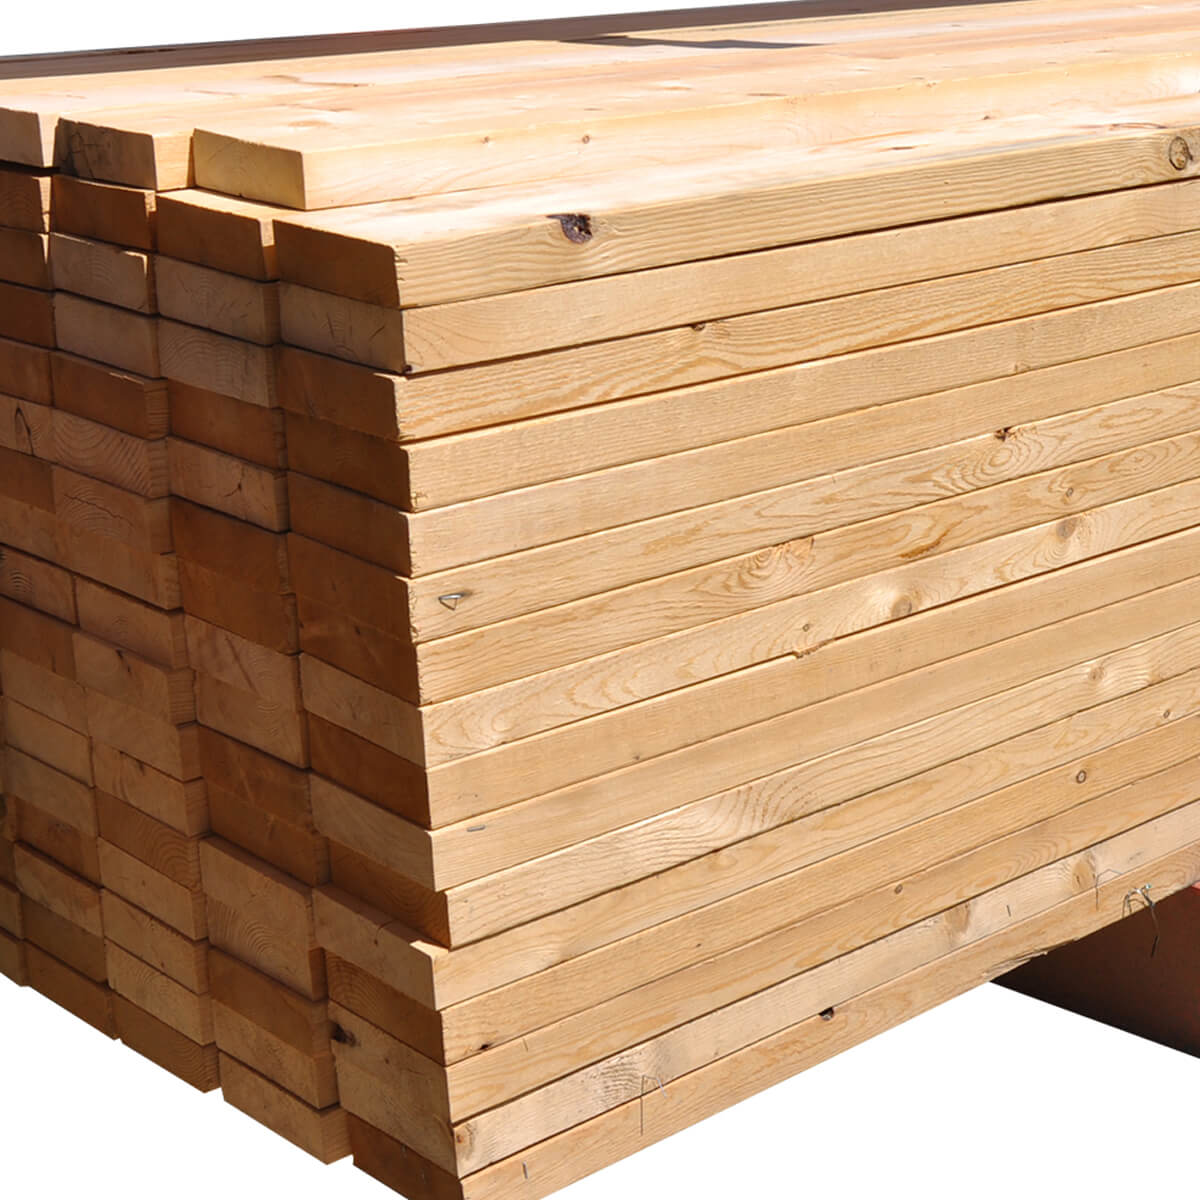 #2 Appearance Spruce Lumber - SPR #2 Appearance 2 x 4 x 8-ft